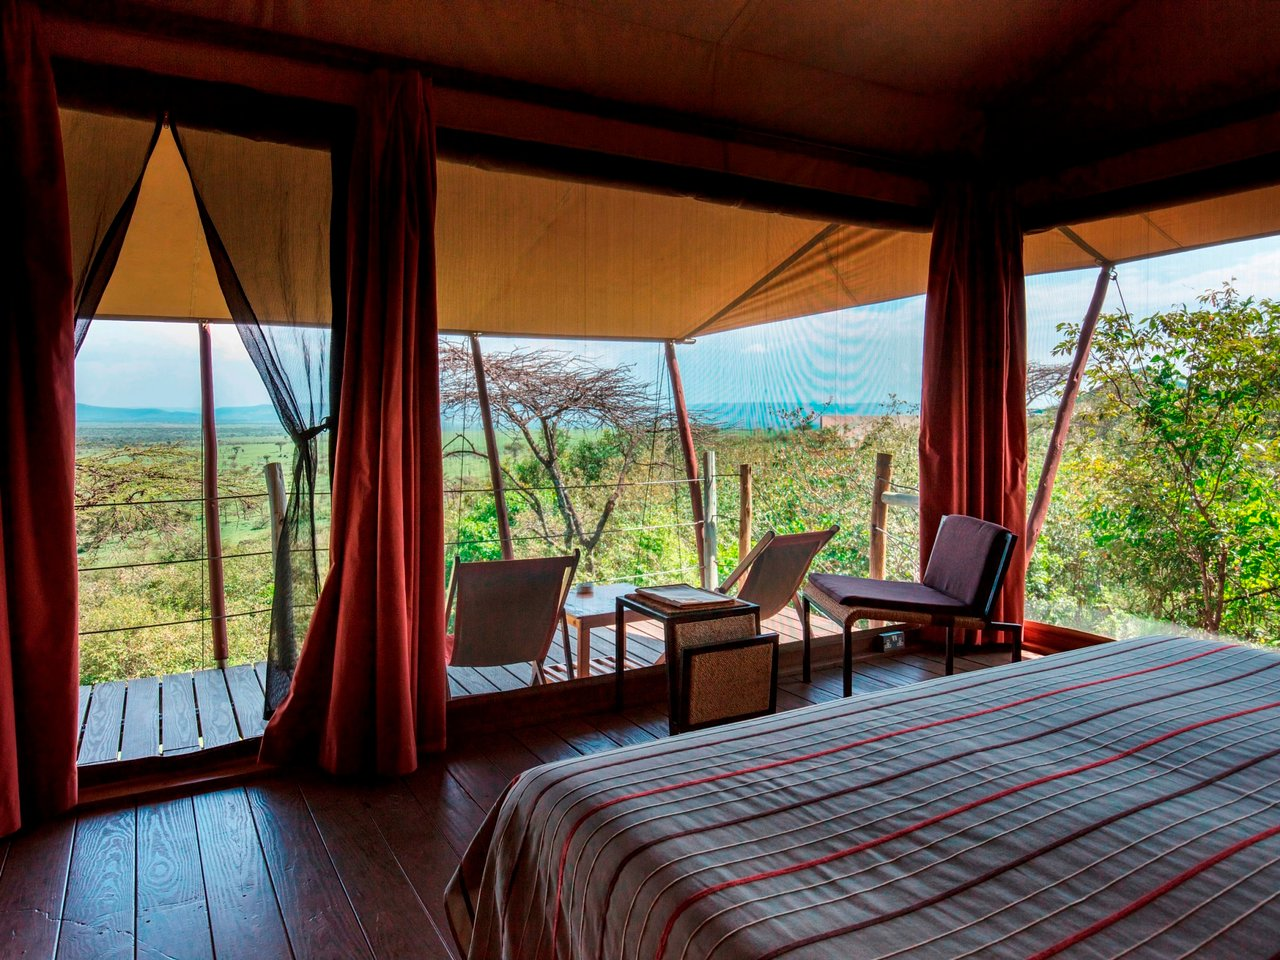 EAGLE VIEW, MARA NABOISHO - Updated 2020 Prices & Campground ...